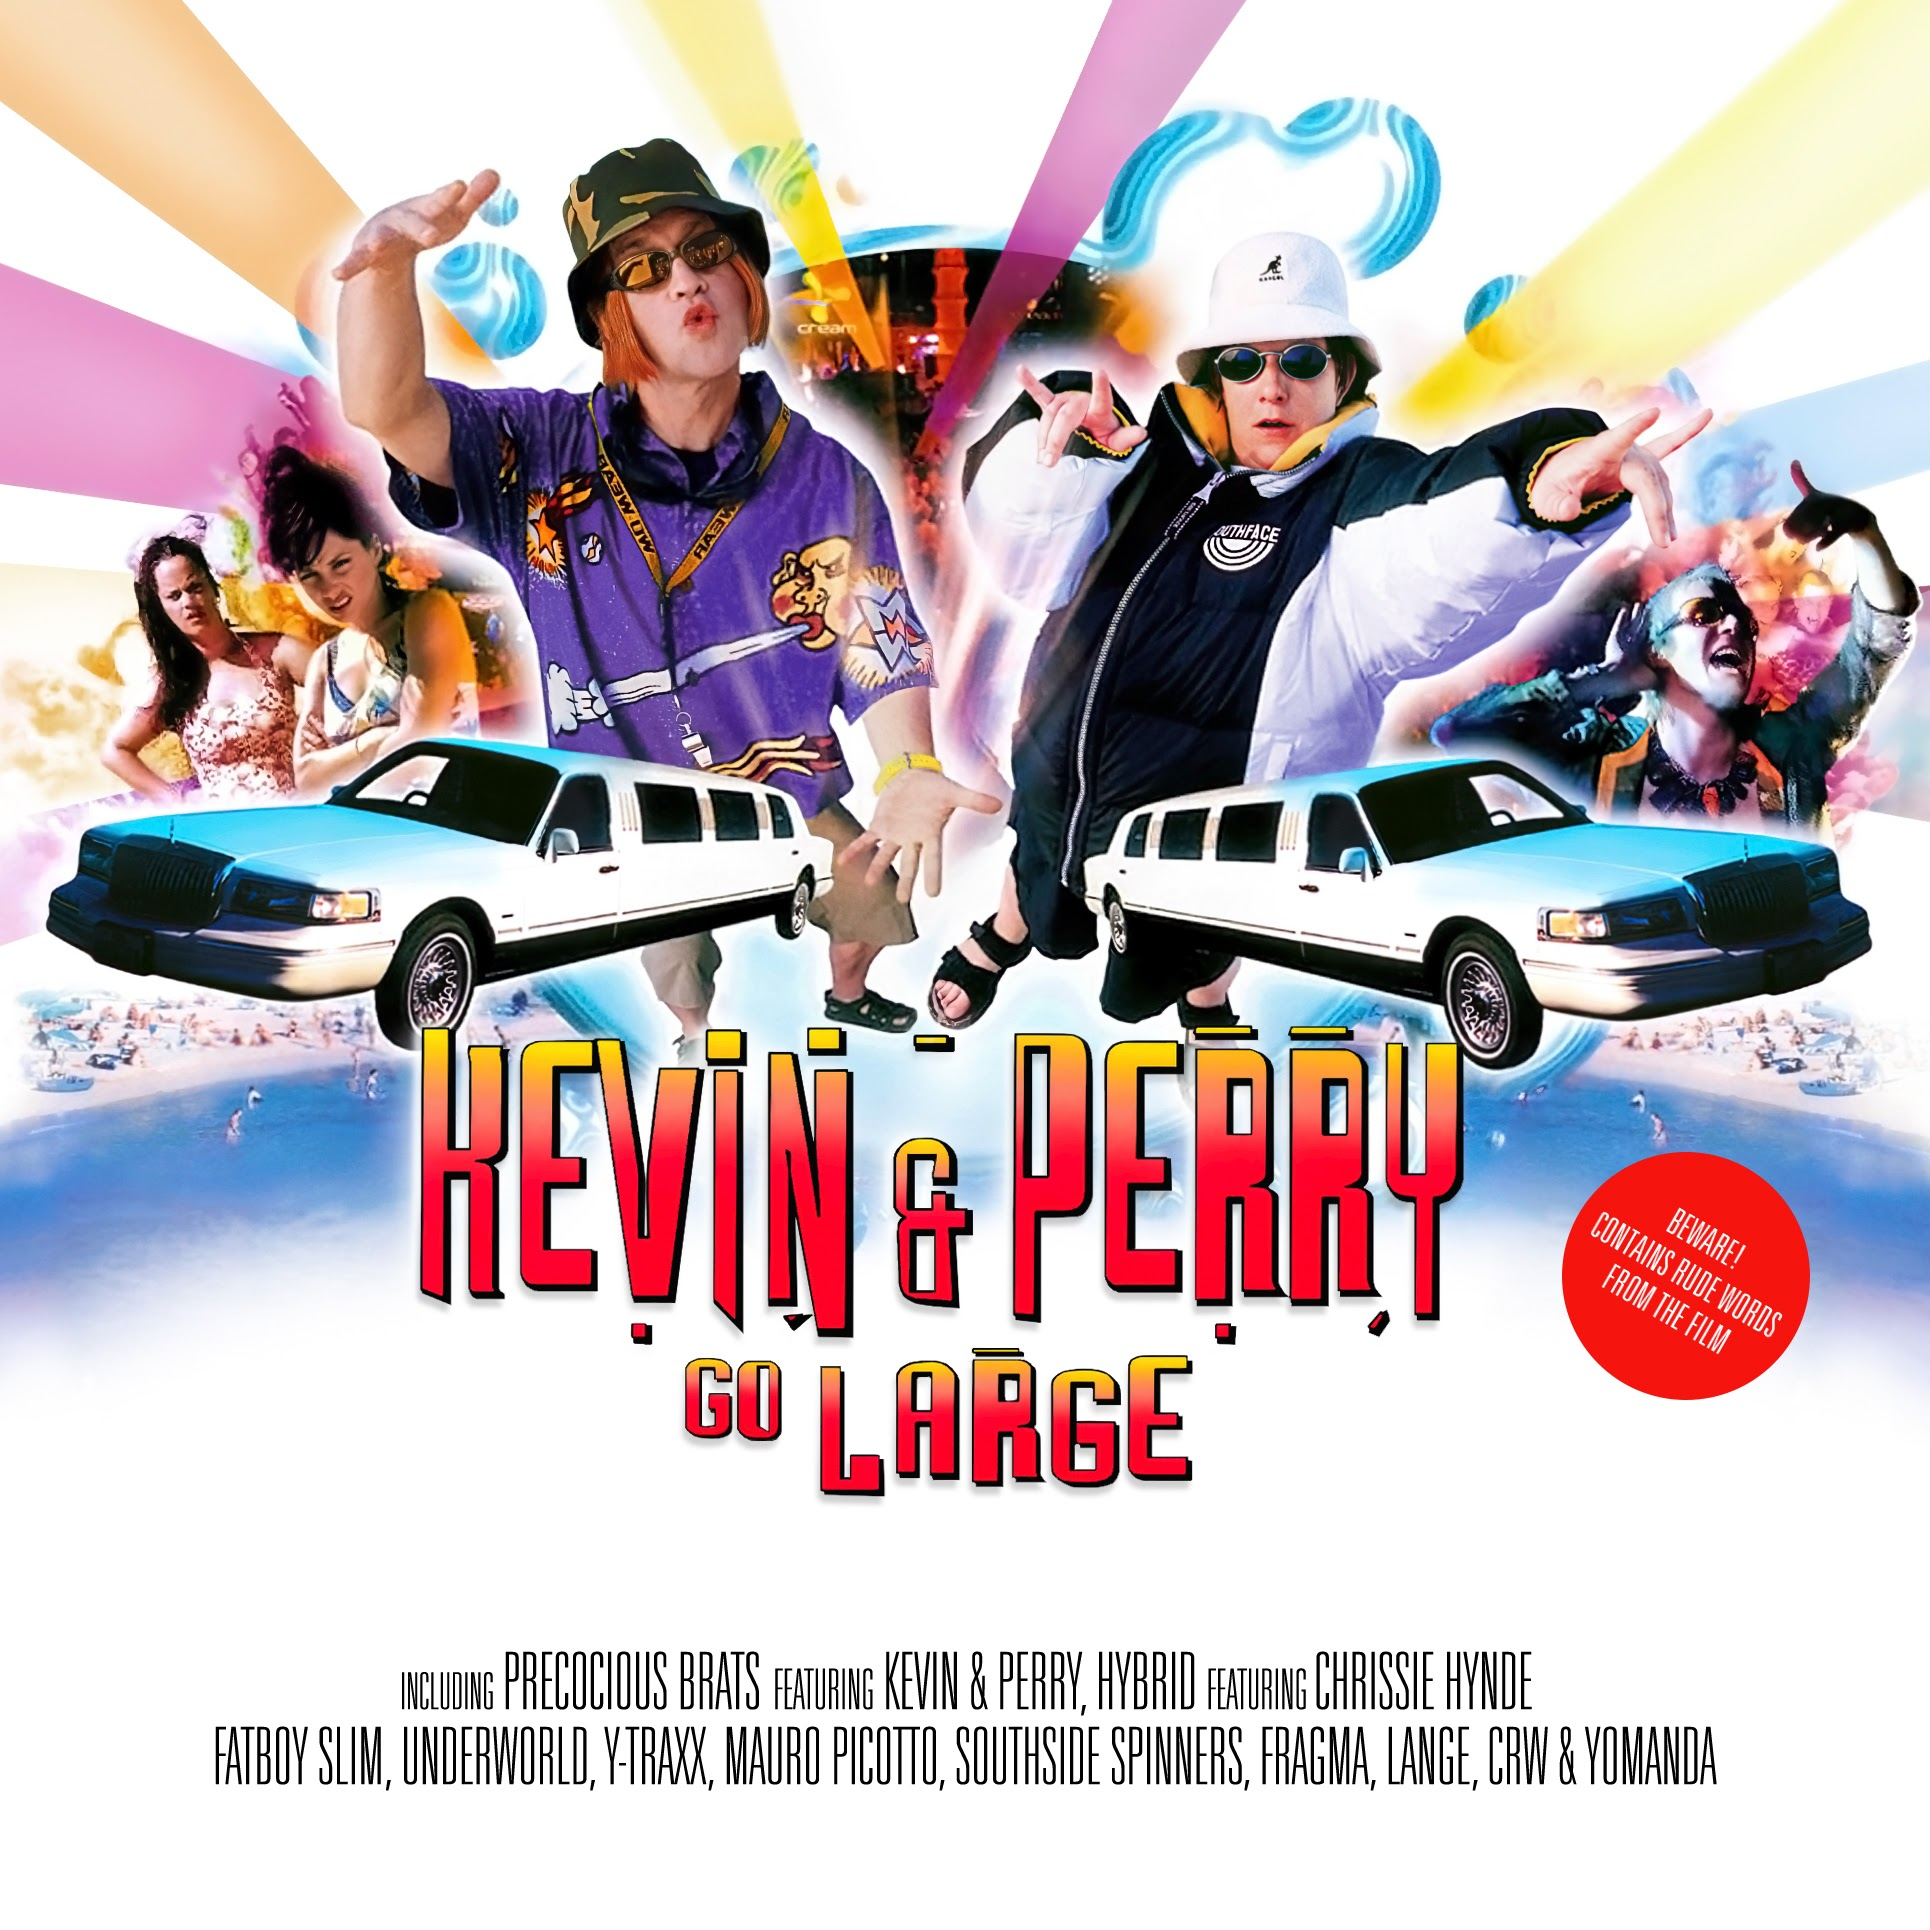 Album Artist: Various Artists (Mixed by Judge Jules) / Album Title: Kevin and Perry Go Large CD 1 (All the Hits from the Film) CD 2 (Kevin & Perry Classic Ibiza Mix) [Customized Album Art]